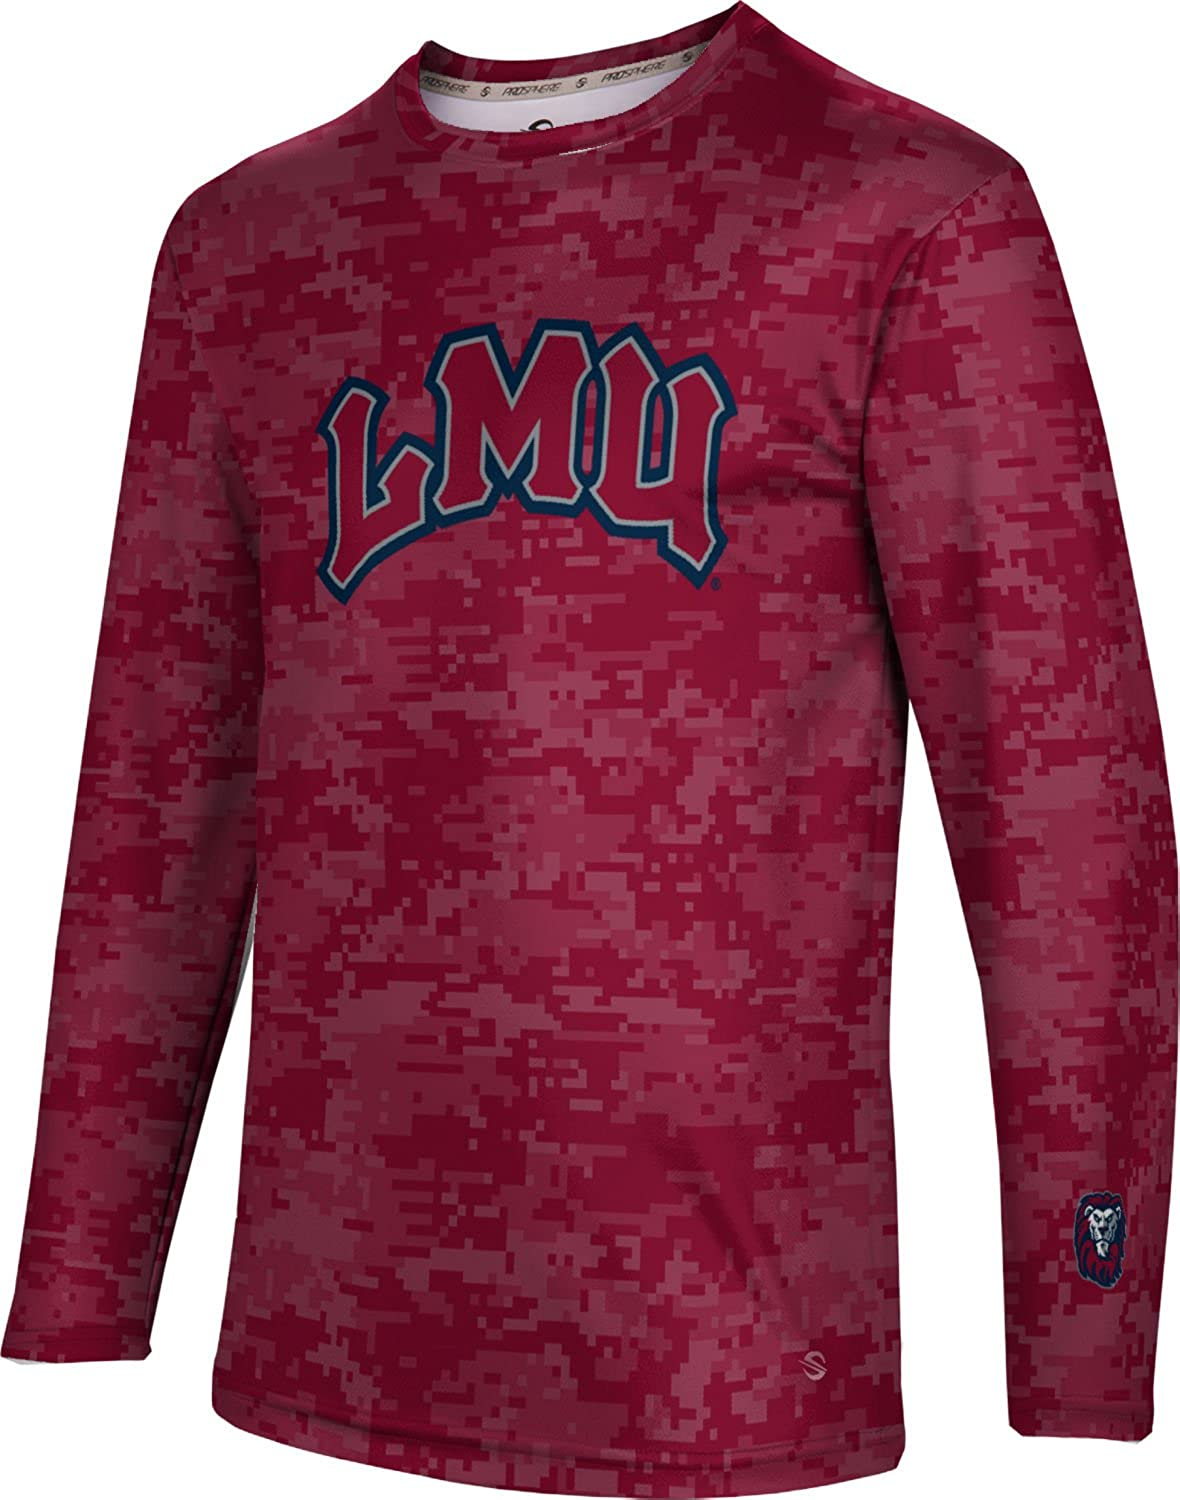 Digi Camo ProSphere Loyola Marymount University Mens Long Sleeve Tee